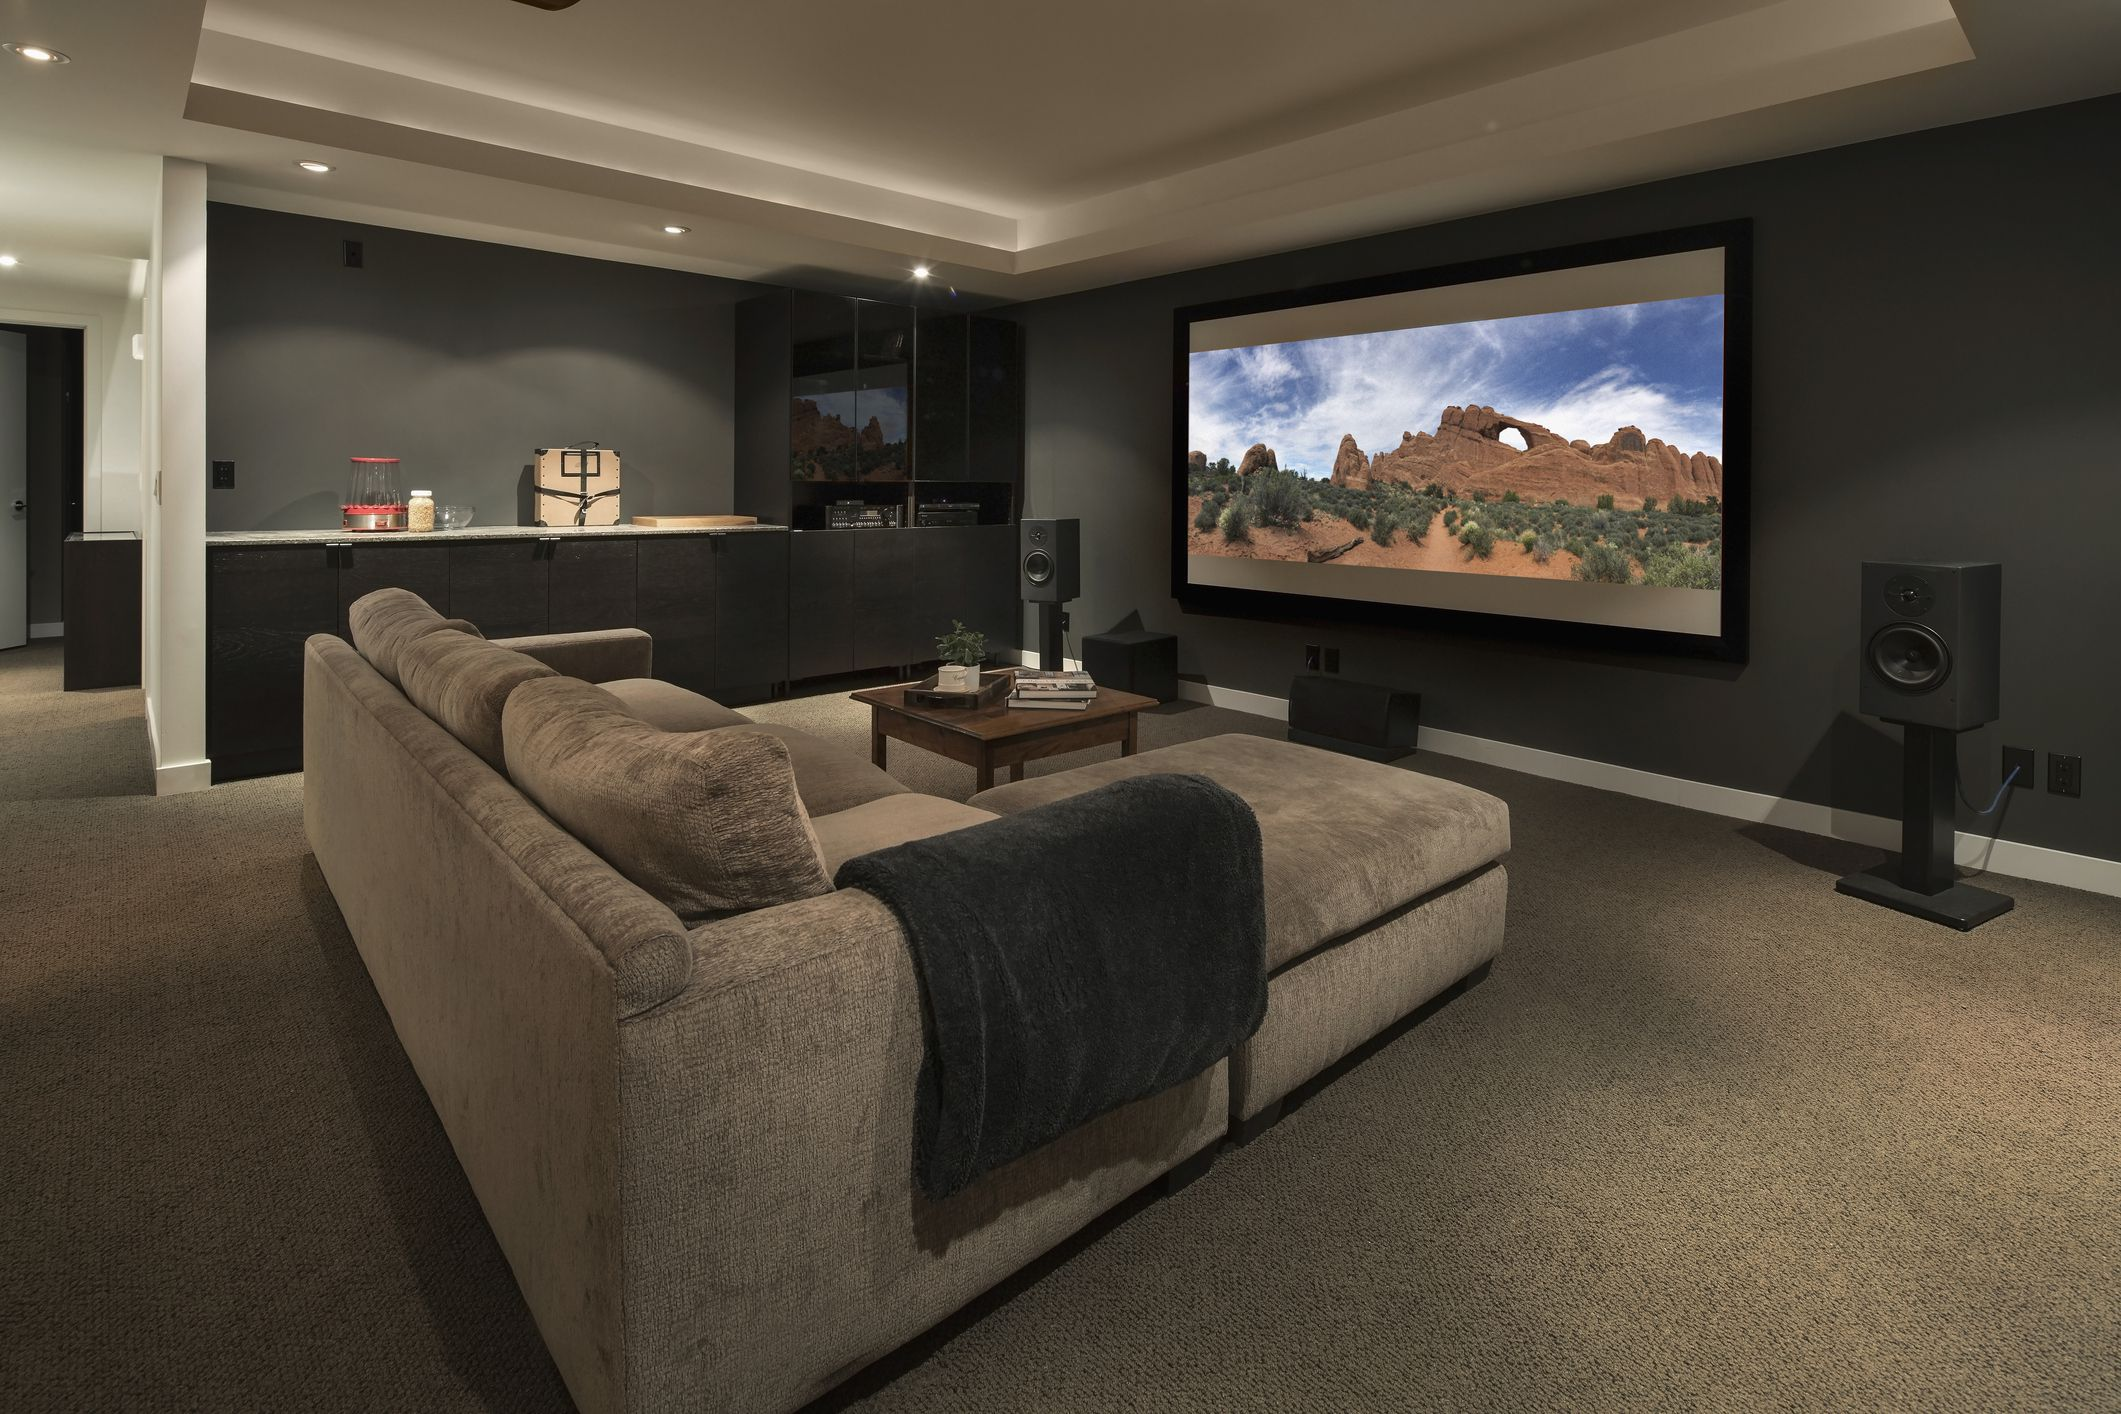 2019 Hottest Holiday Gift Ideas Home Theater Movie Tv Tech Geeks News